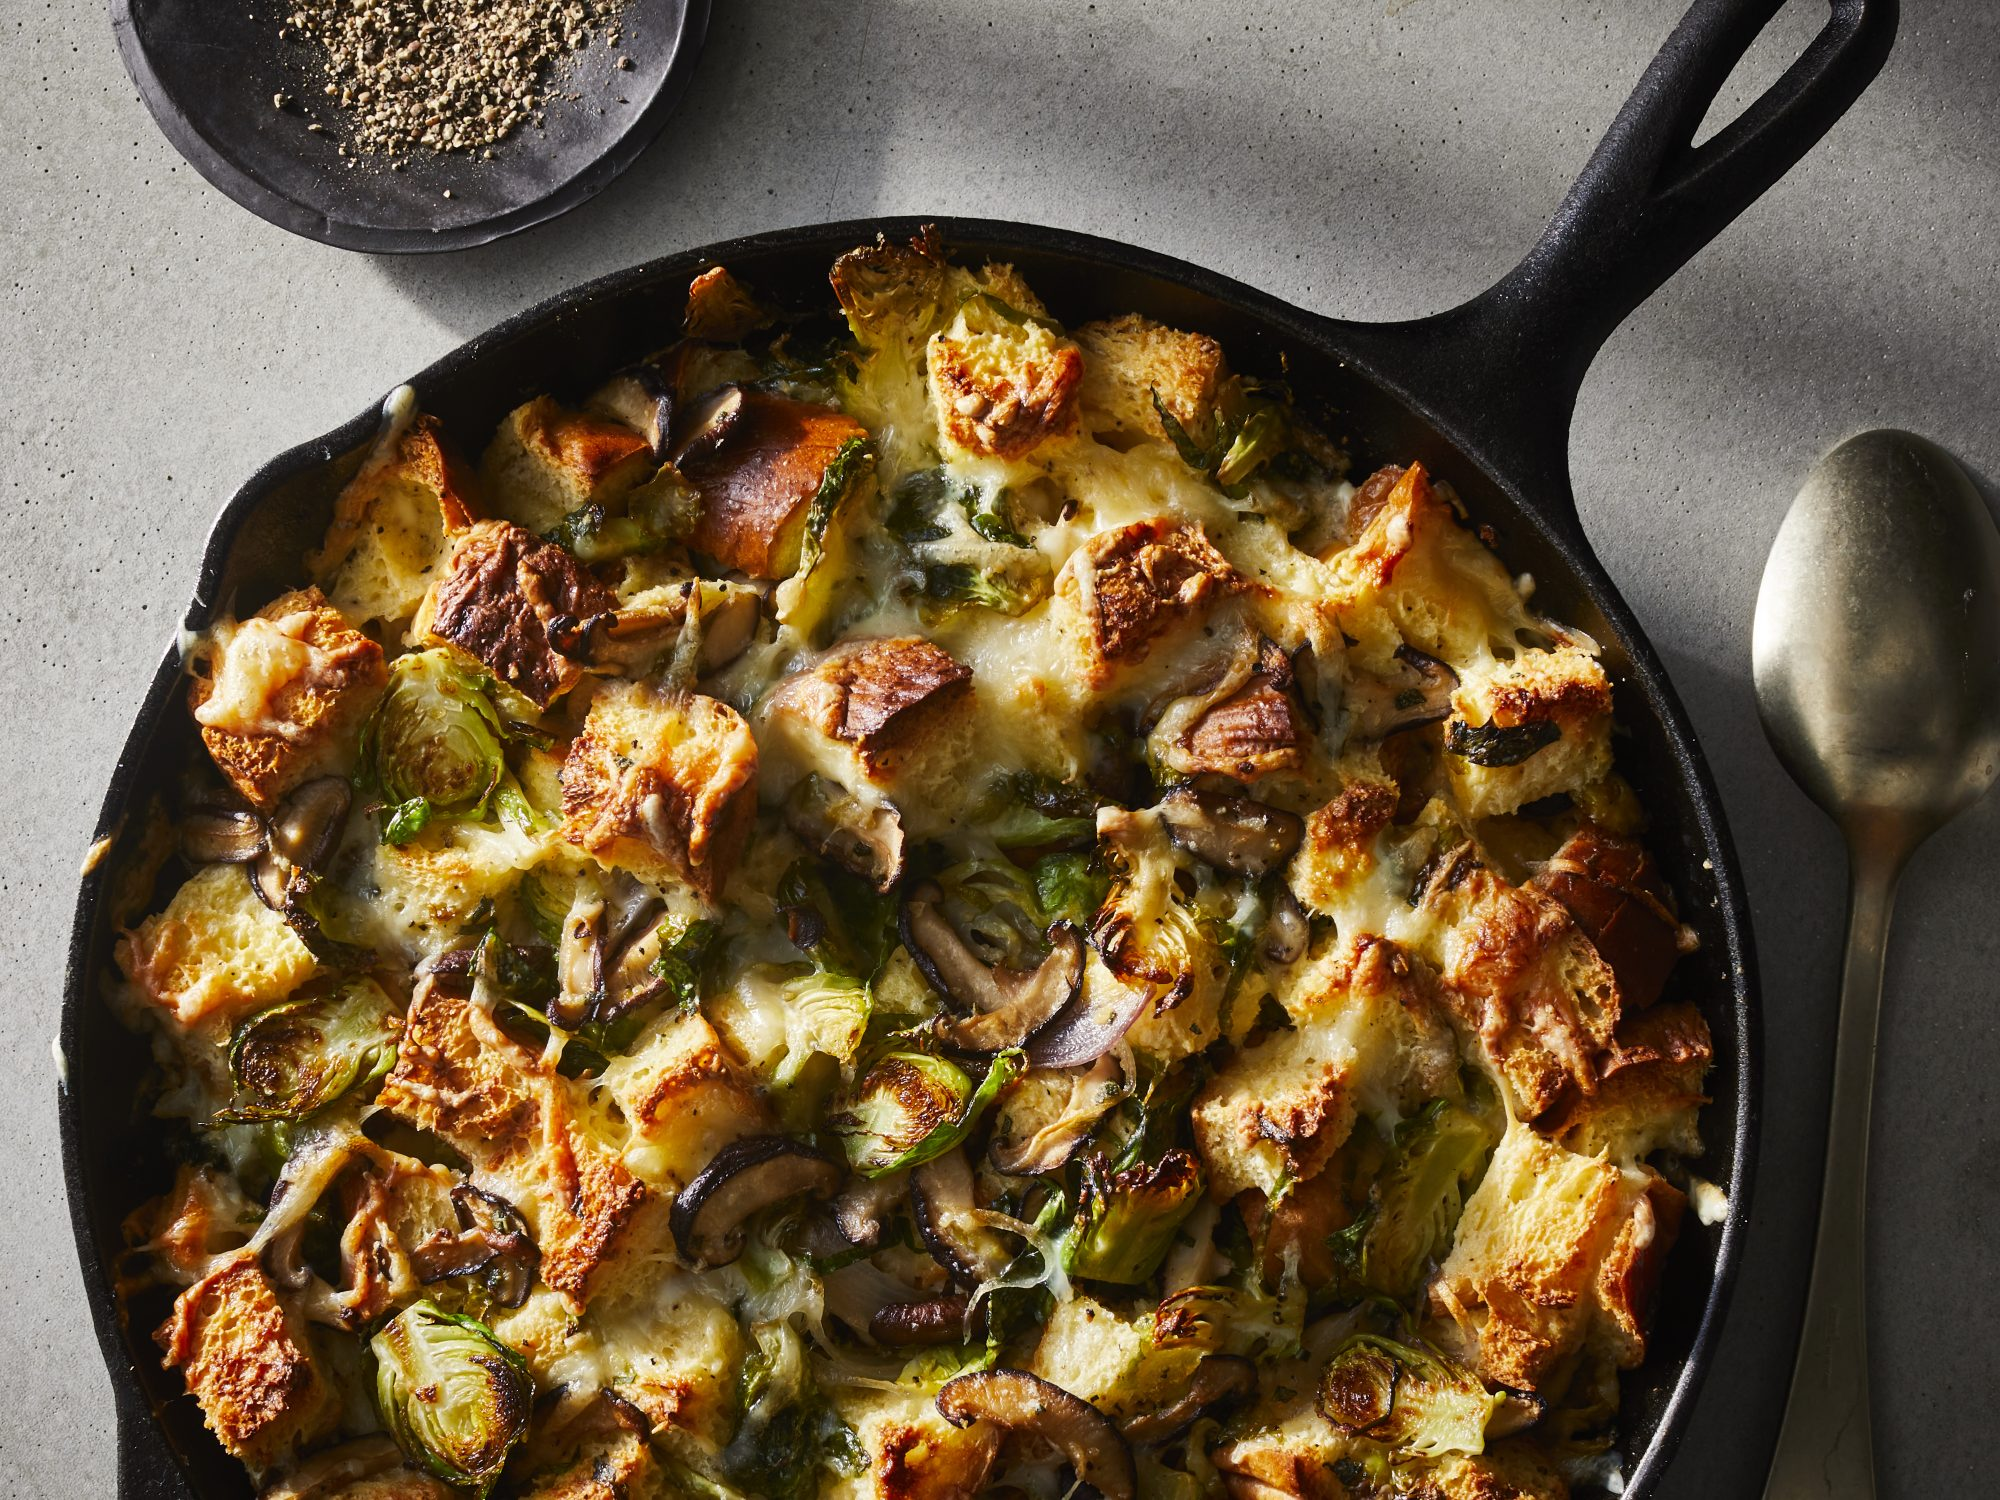 Cheesy-Brussels-Sprouts-Bread-Pudding-FT-Recipe2019178.jpg